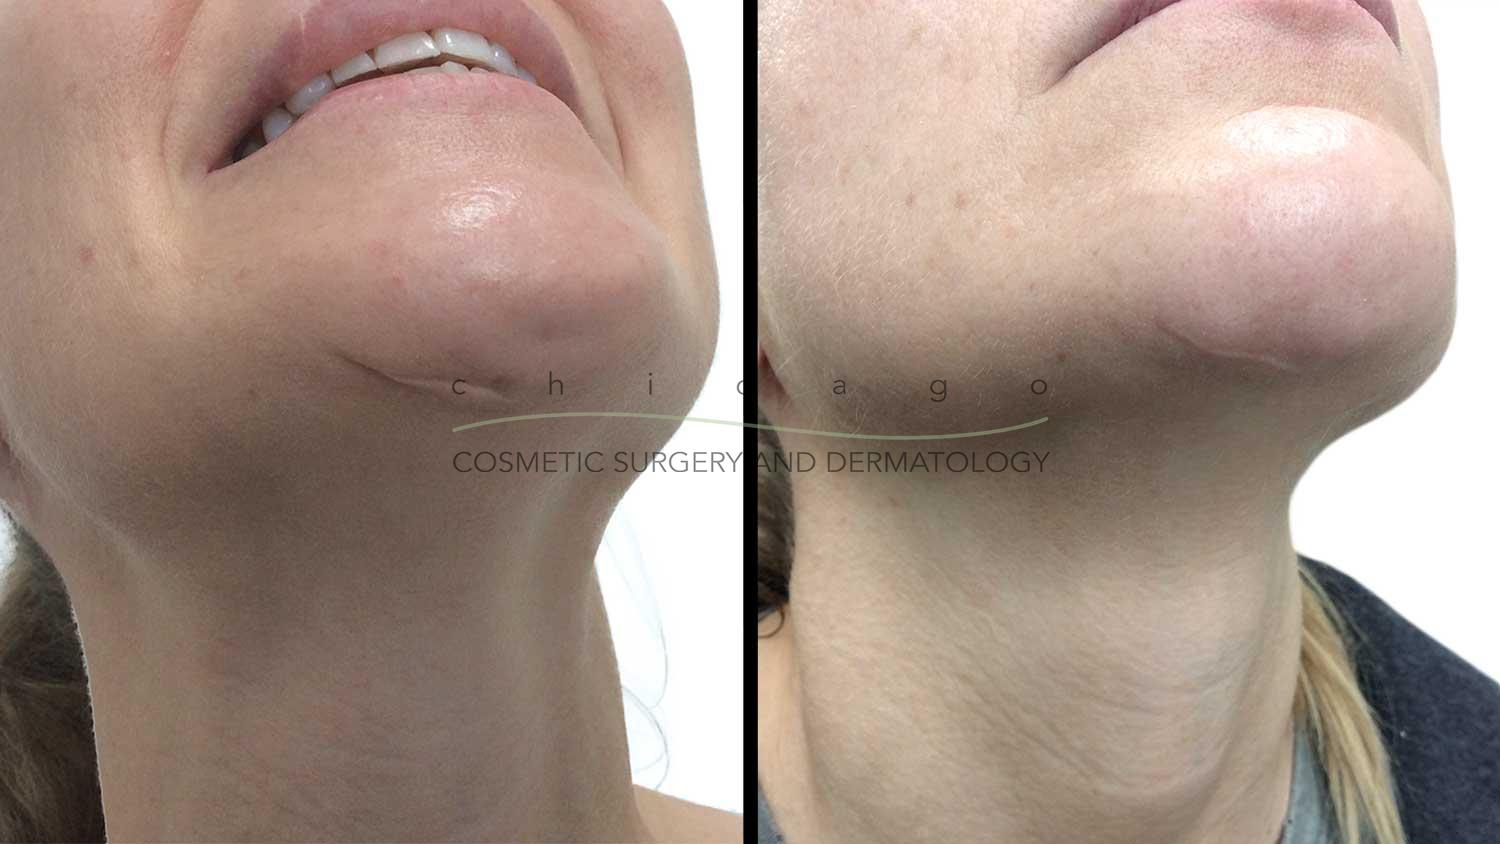 Results of Bellafill injectable filler for scars with Dr. Fine